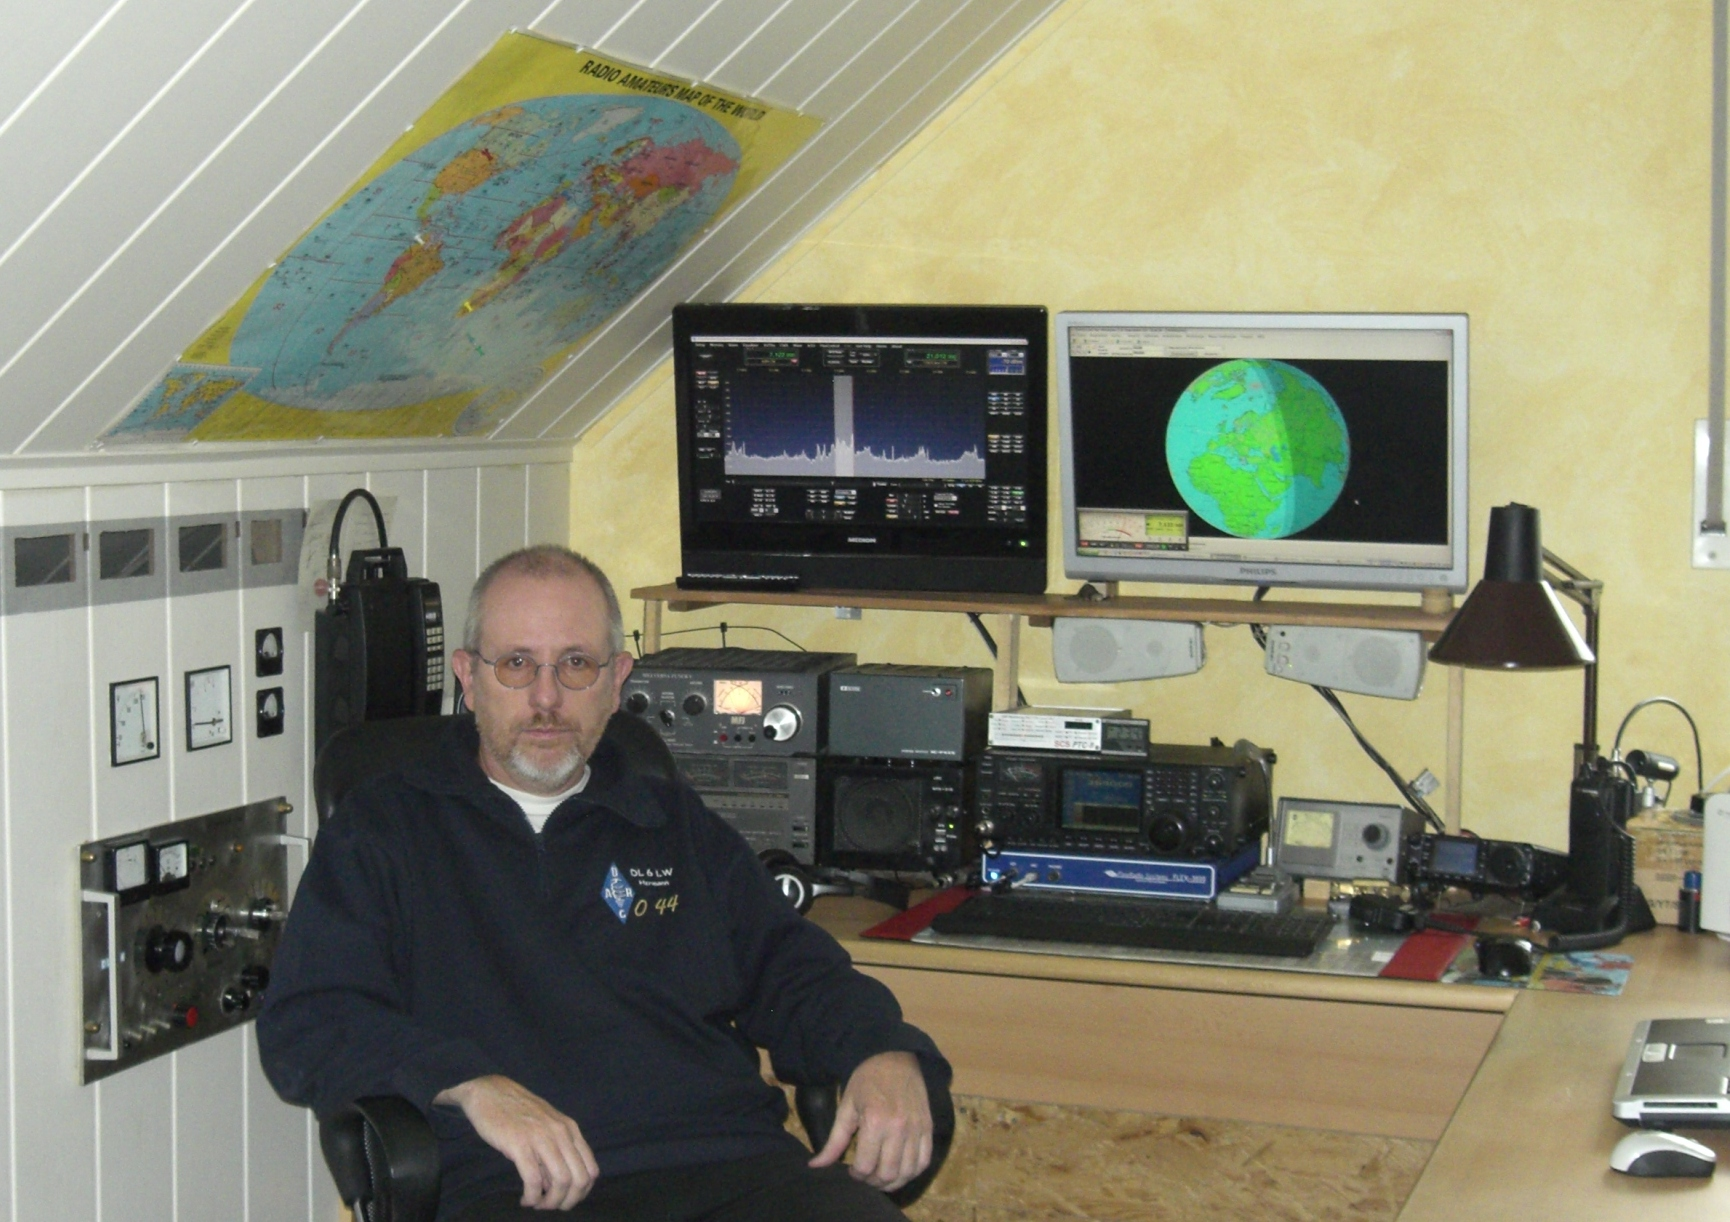 QSL image for DL6LW